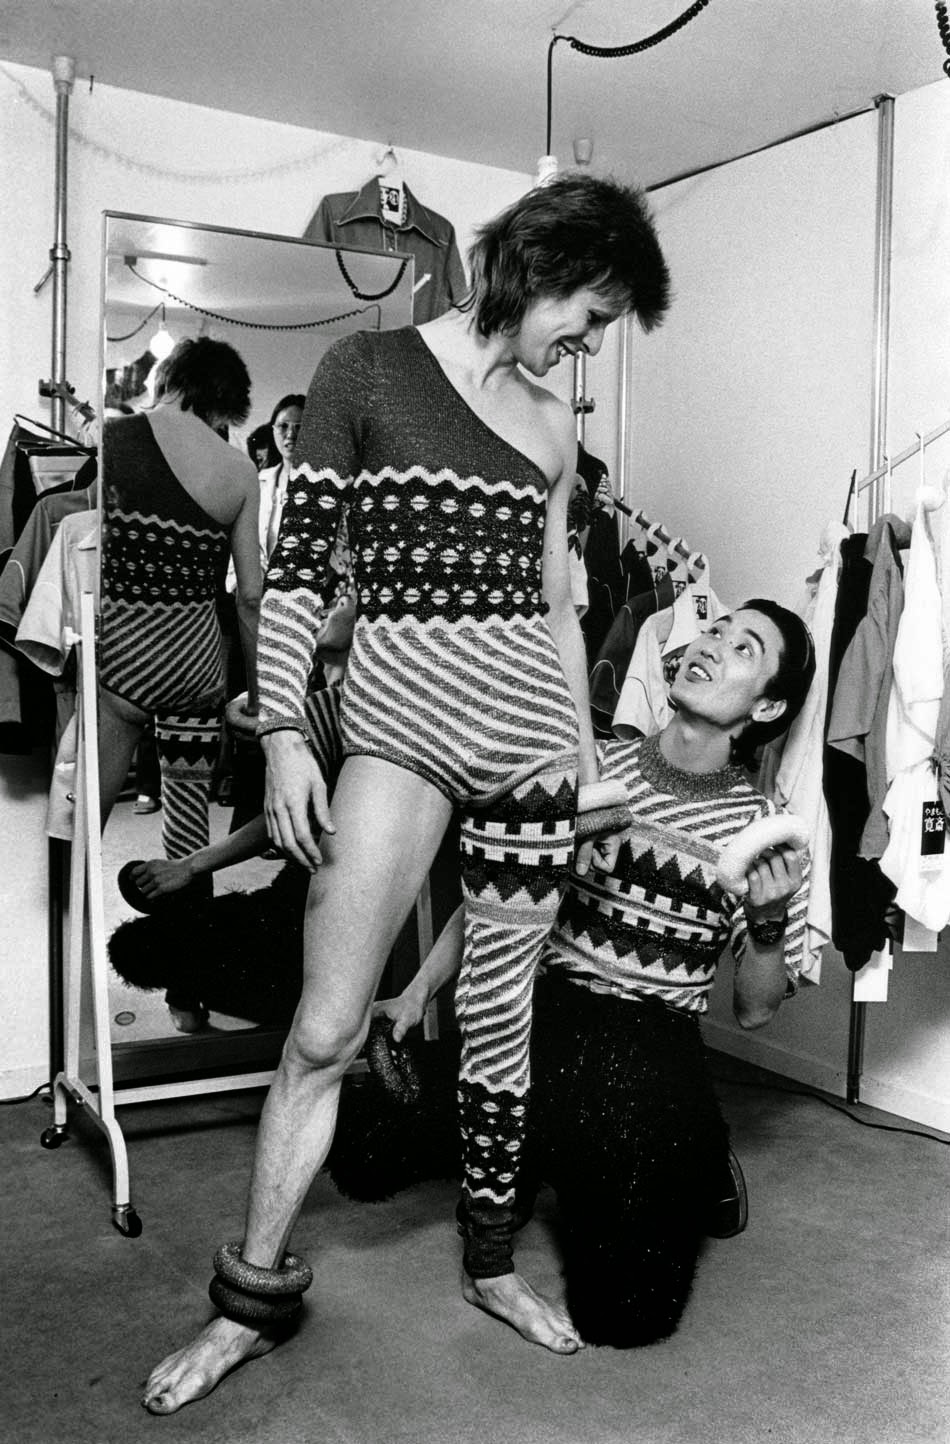 David Bowie in knitted suit